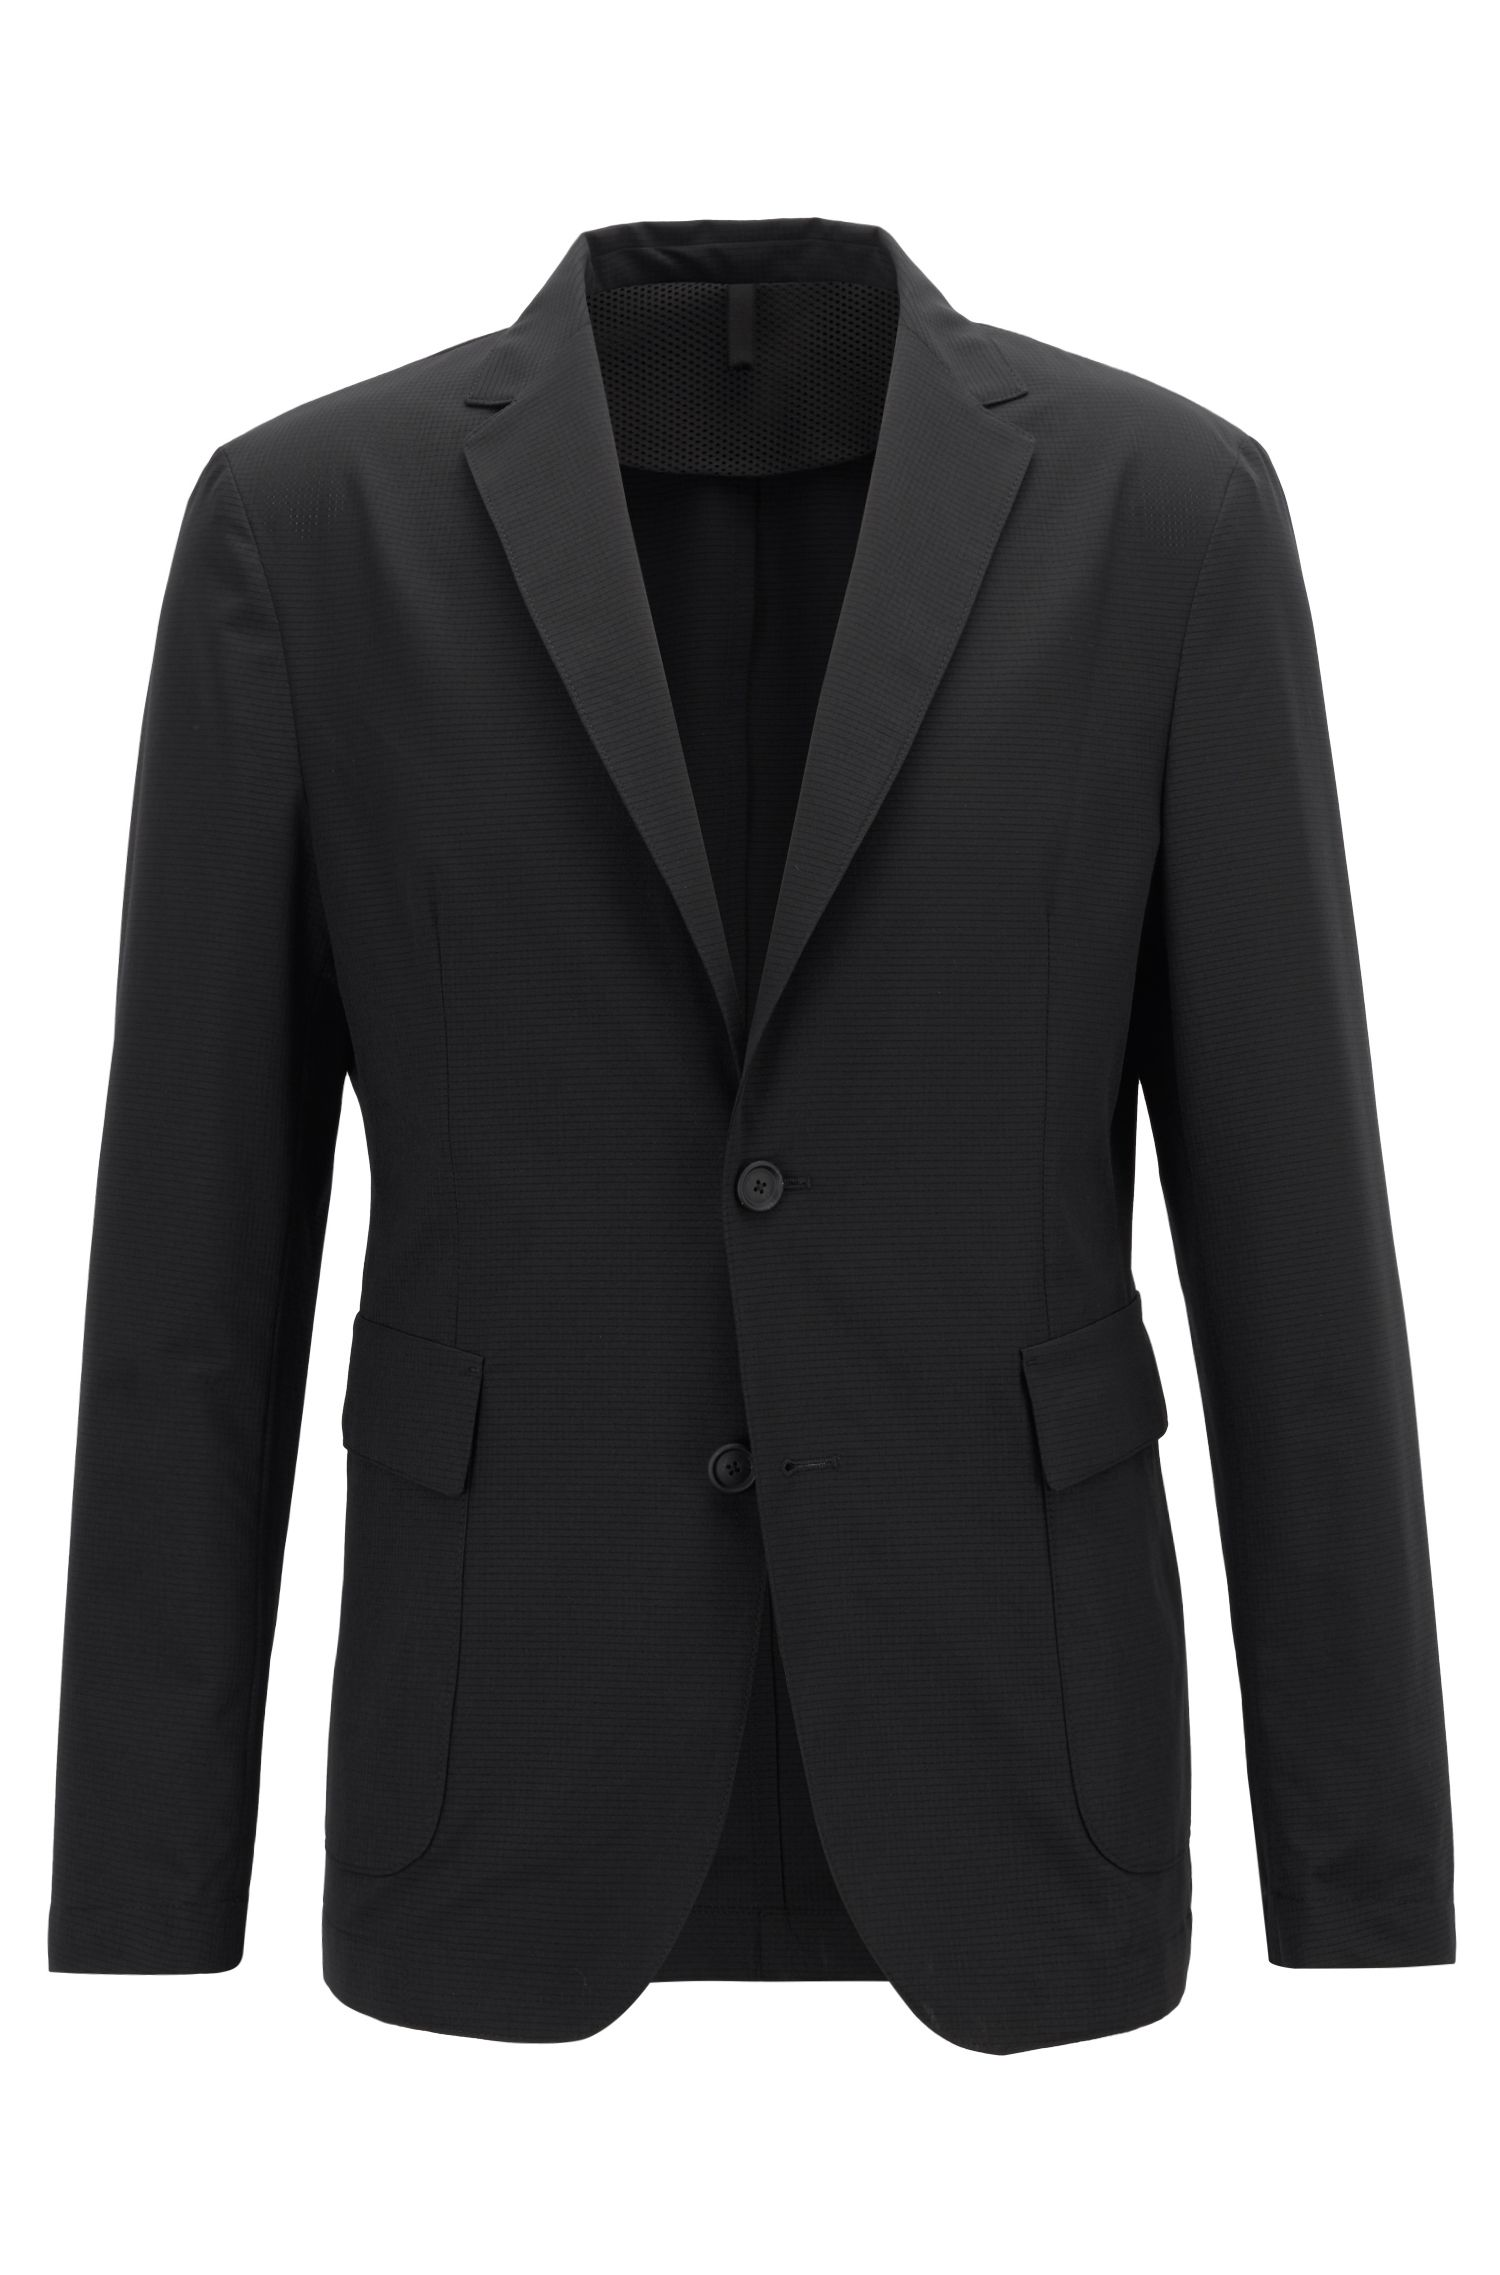 Travel Line slim-fit jacket in micro-patterned fabric, Black